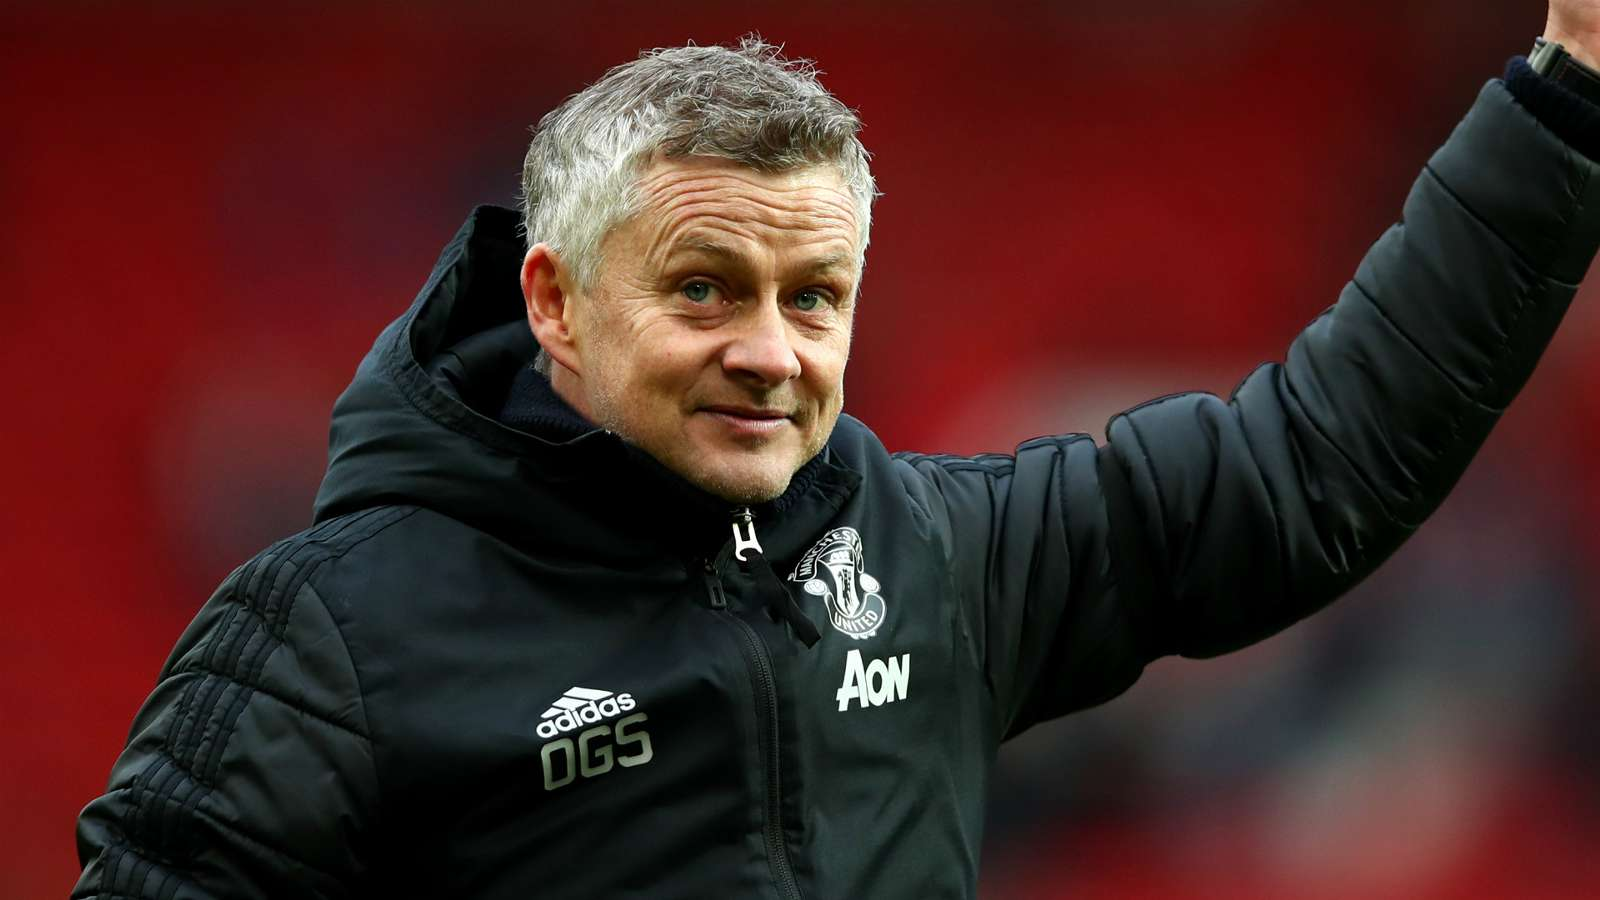 'Solskjaer is a magician in big games' - Manchester United boss praised by Molde star Gabrielsen - Bóng Đá